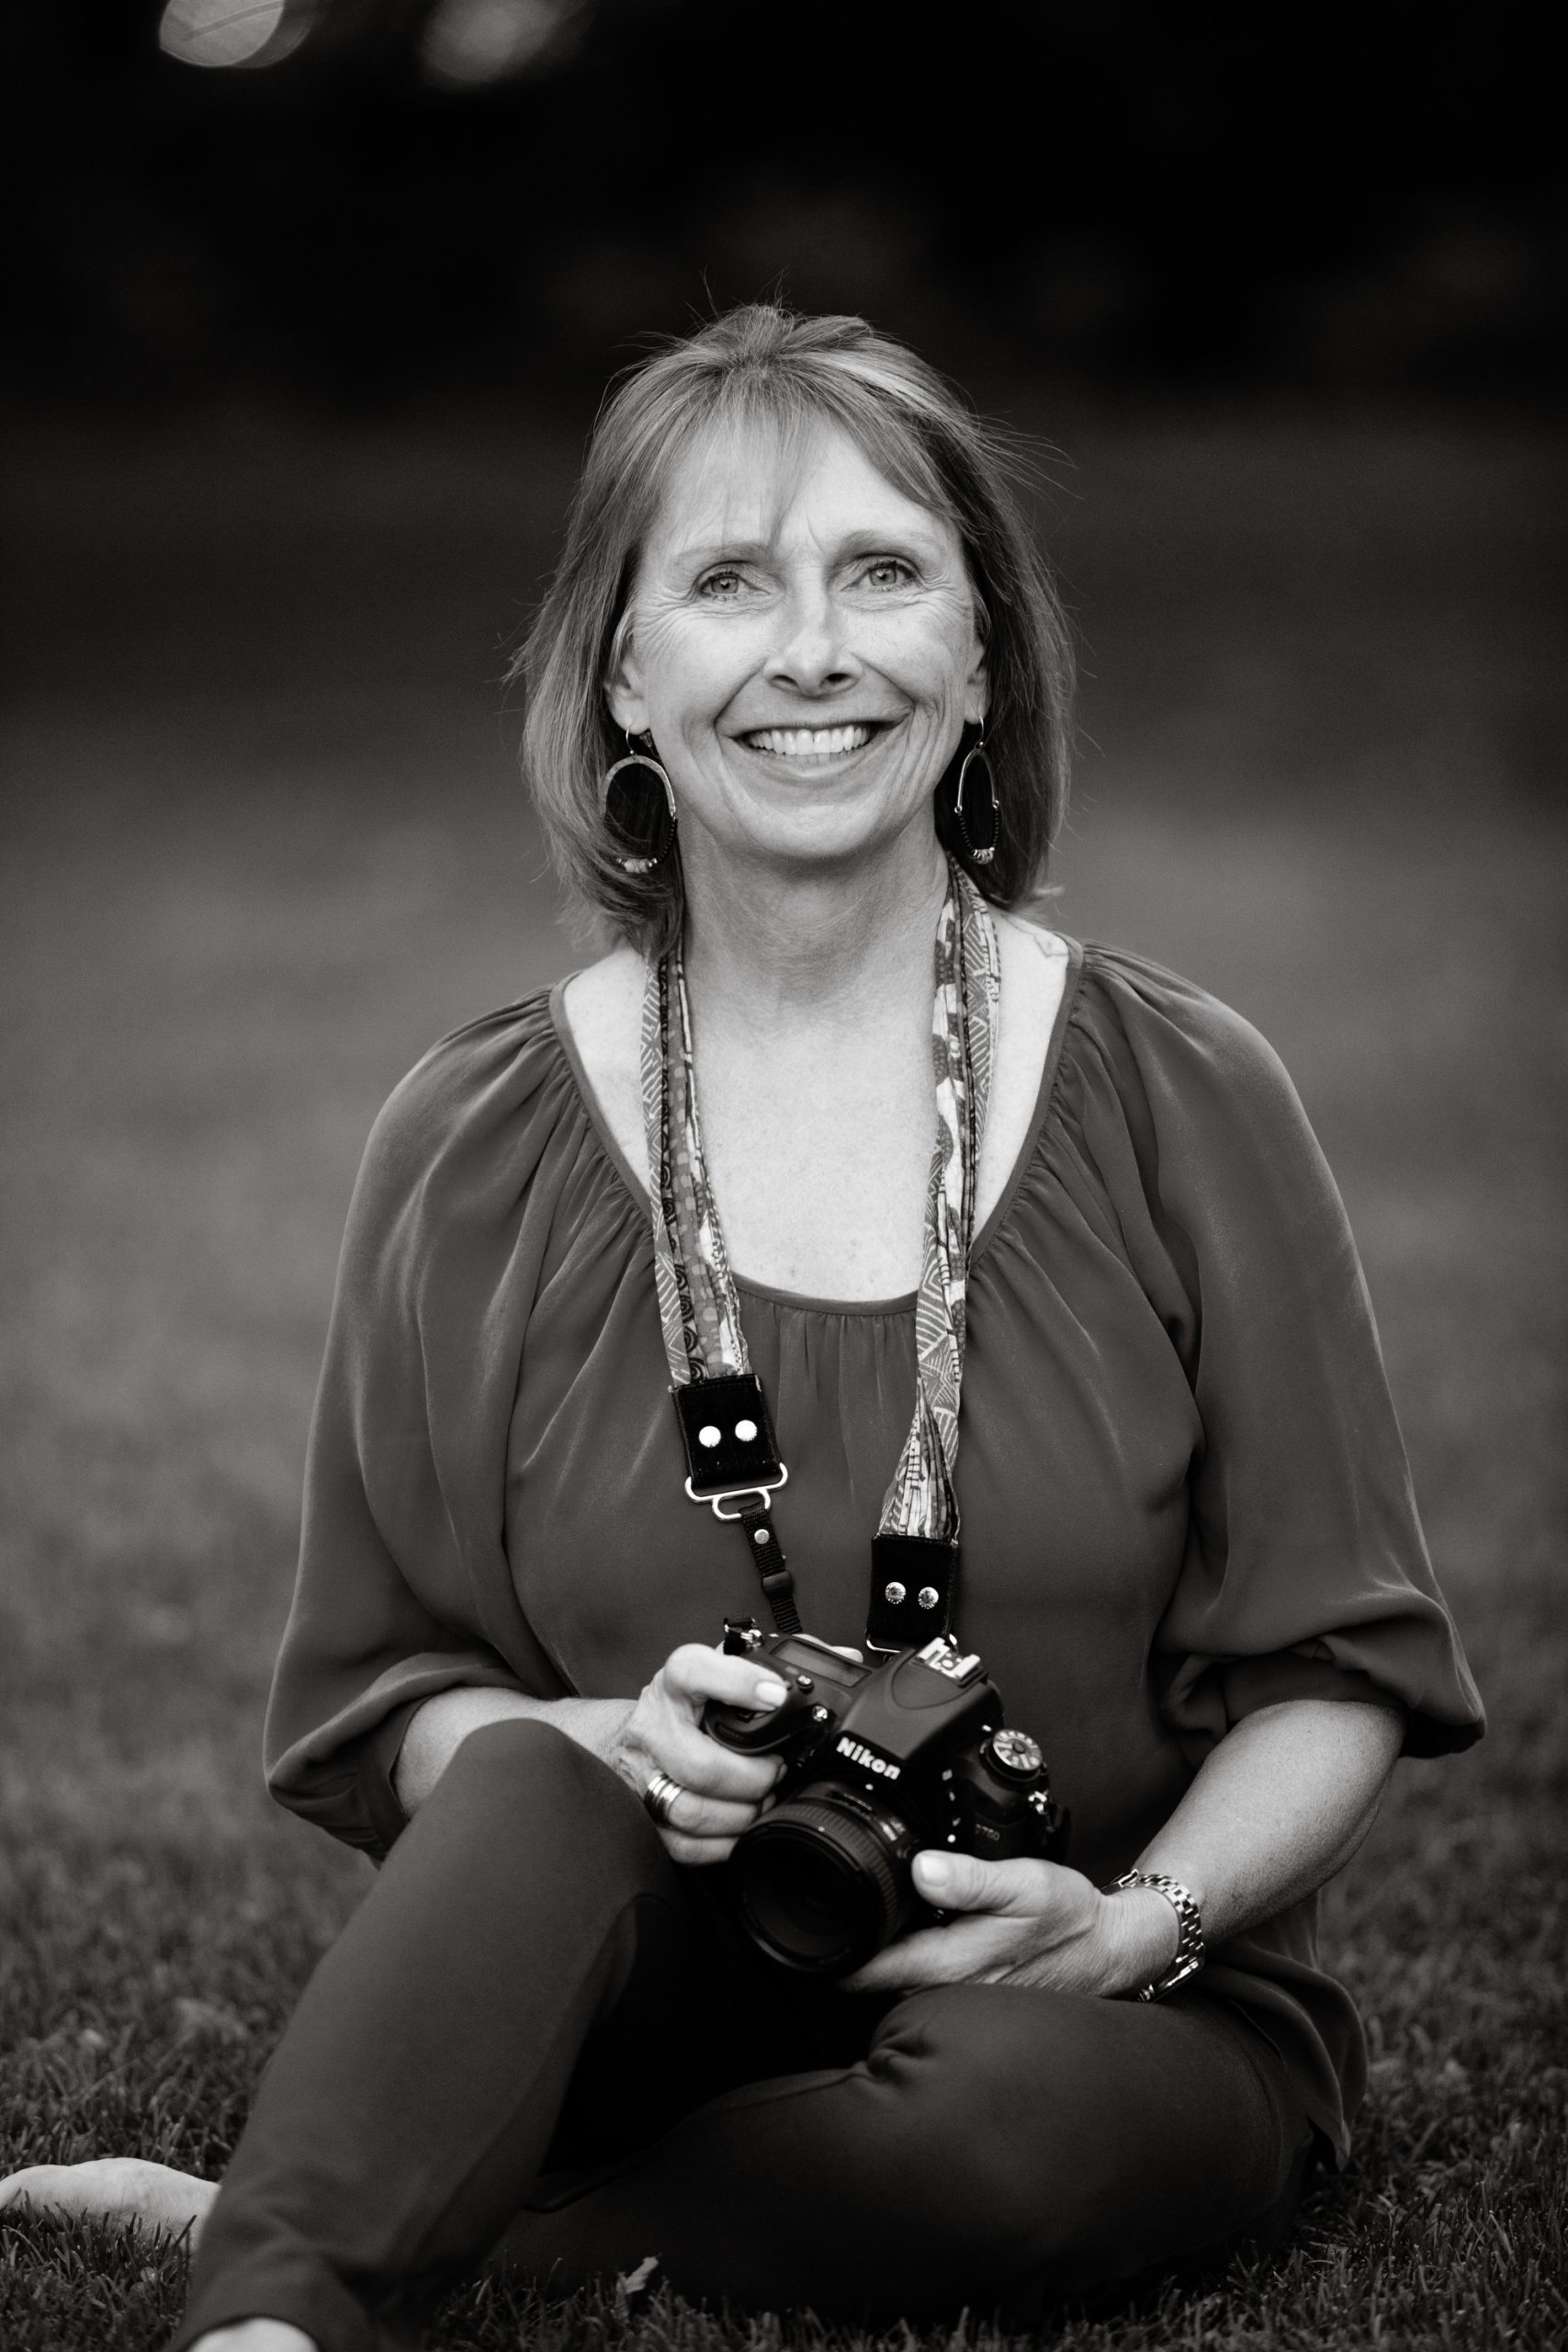 About Photographer Robin Enright Salcido   RES Photography